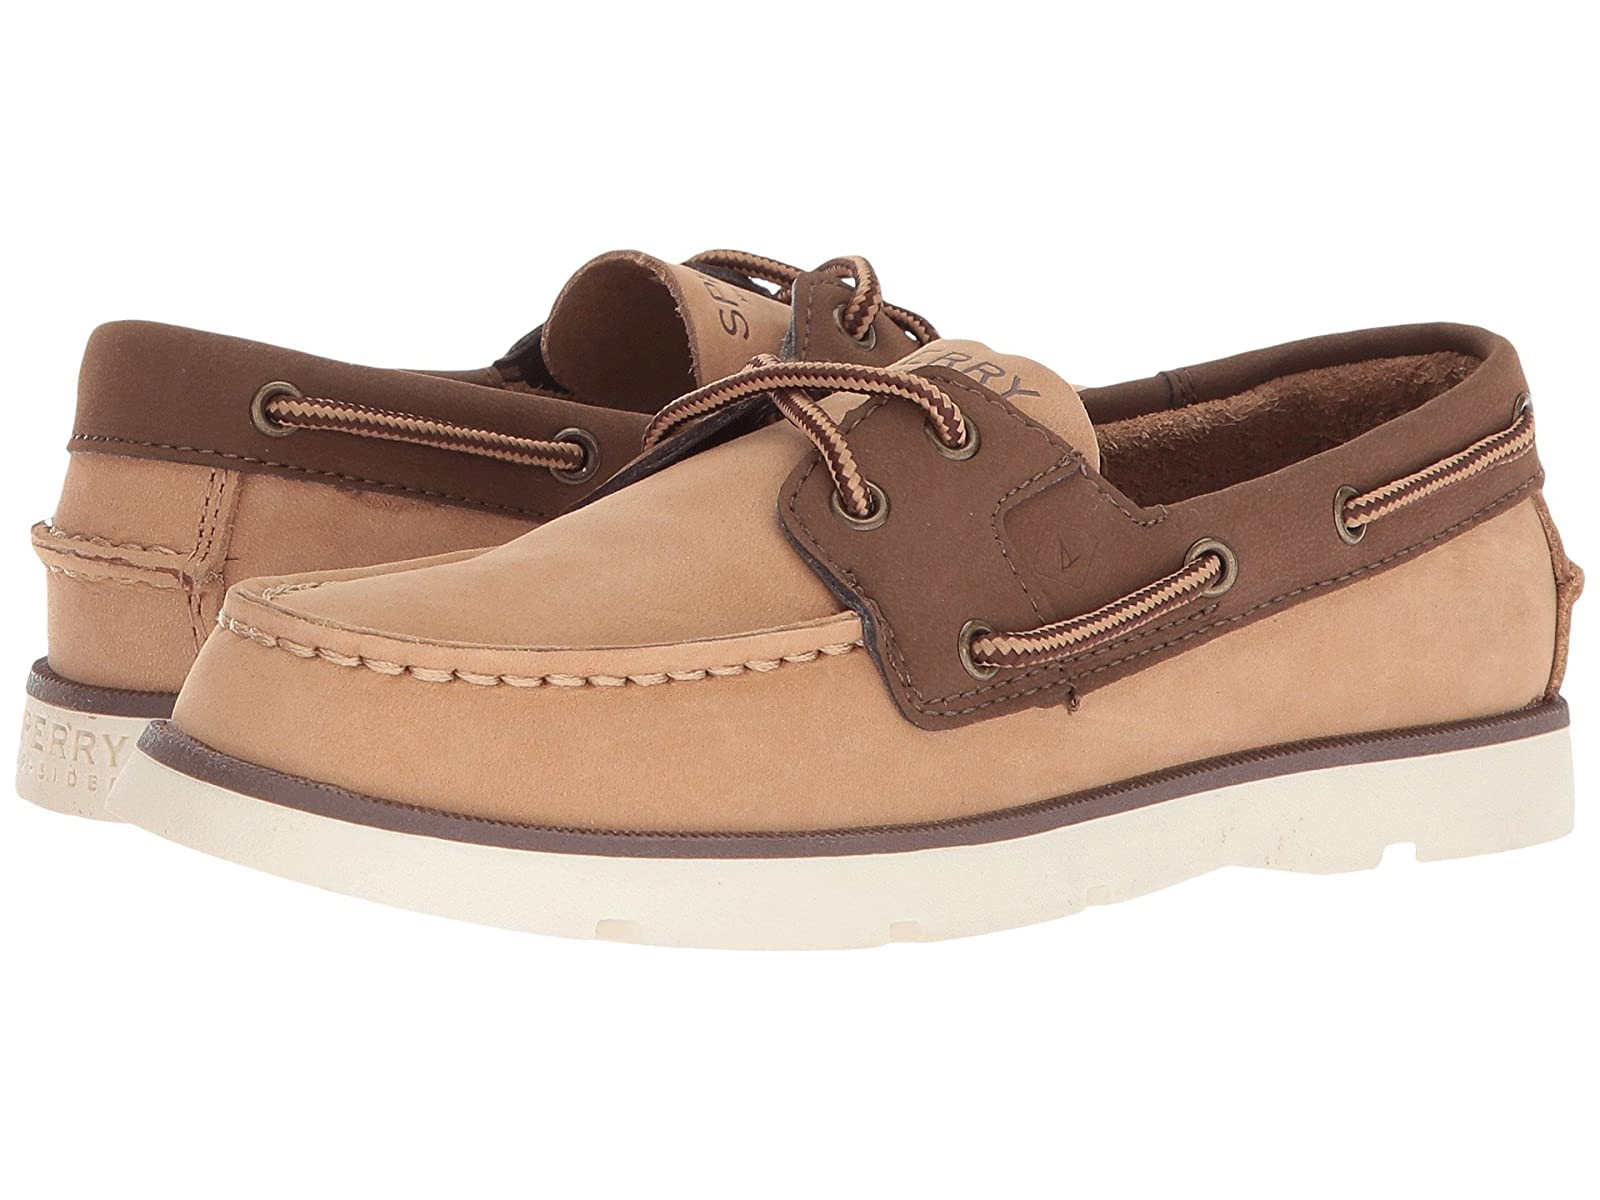 Sperry Kids Leeward (Little Kid/Big Kid)Cheap and distinctive eye-catching shoes